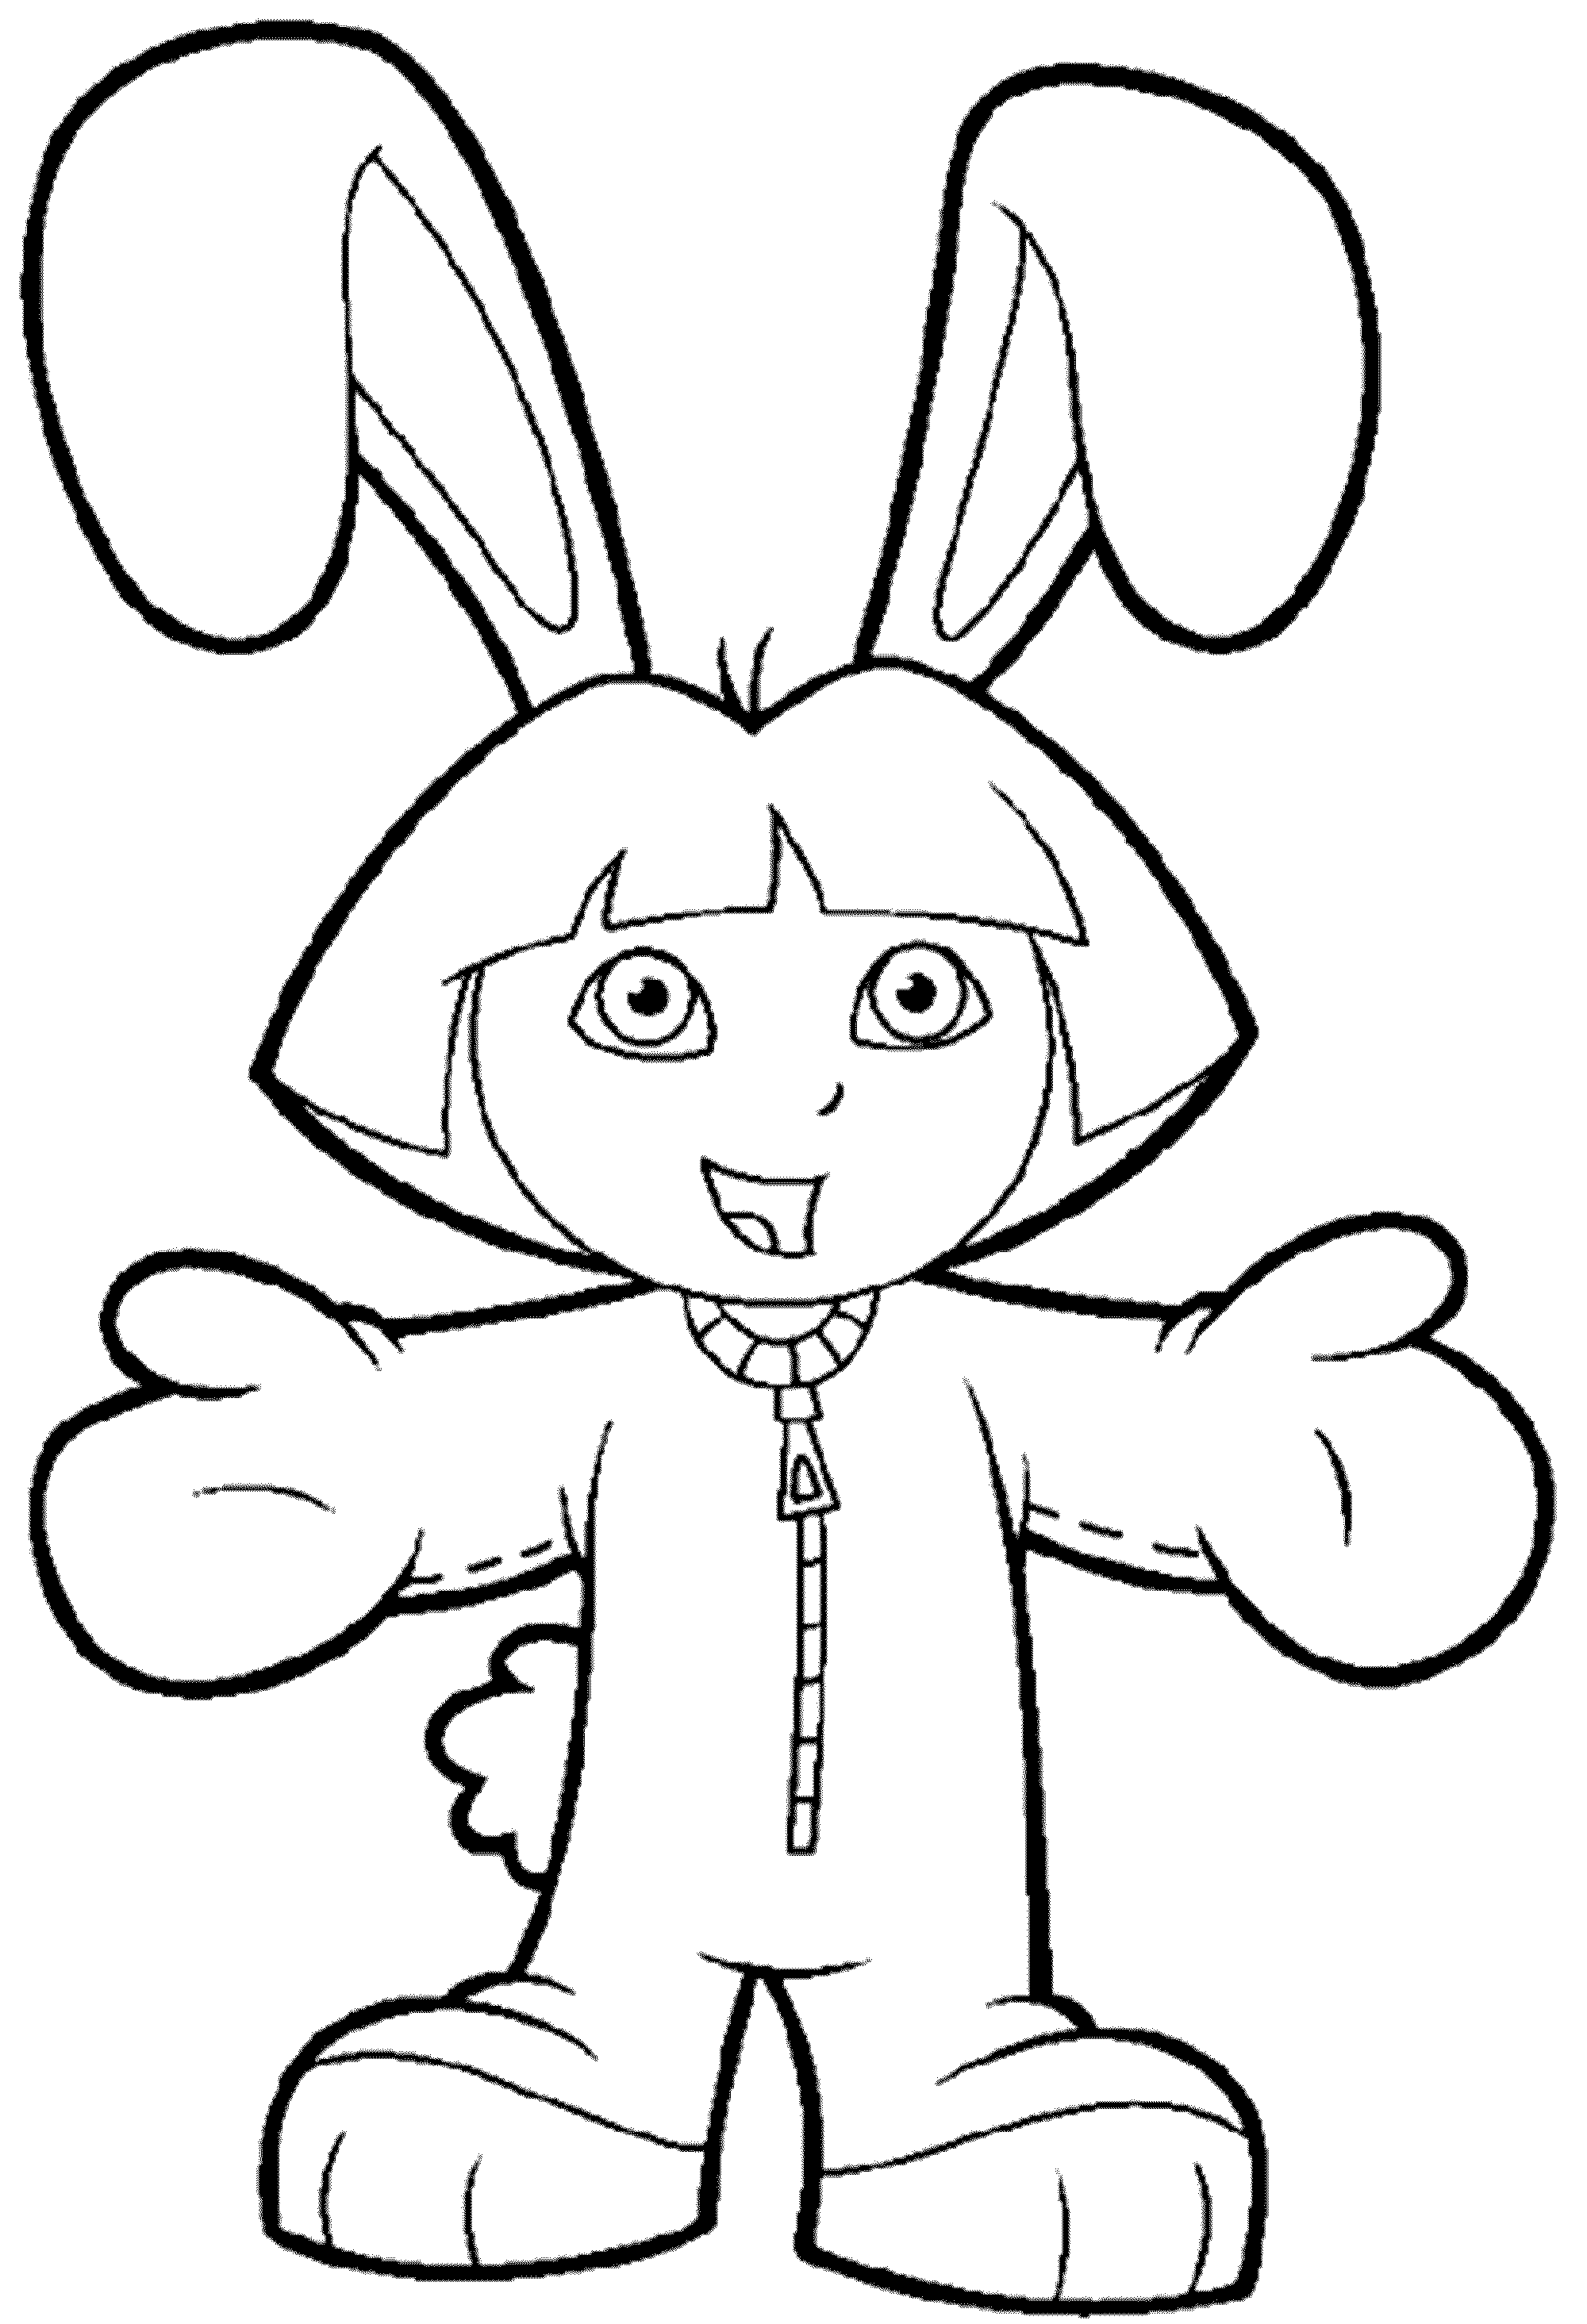 dora colouring sheet print download dora coloring pages to learn new things dora colouring sheet